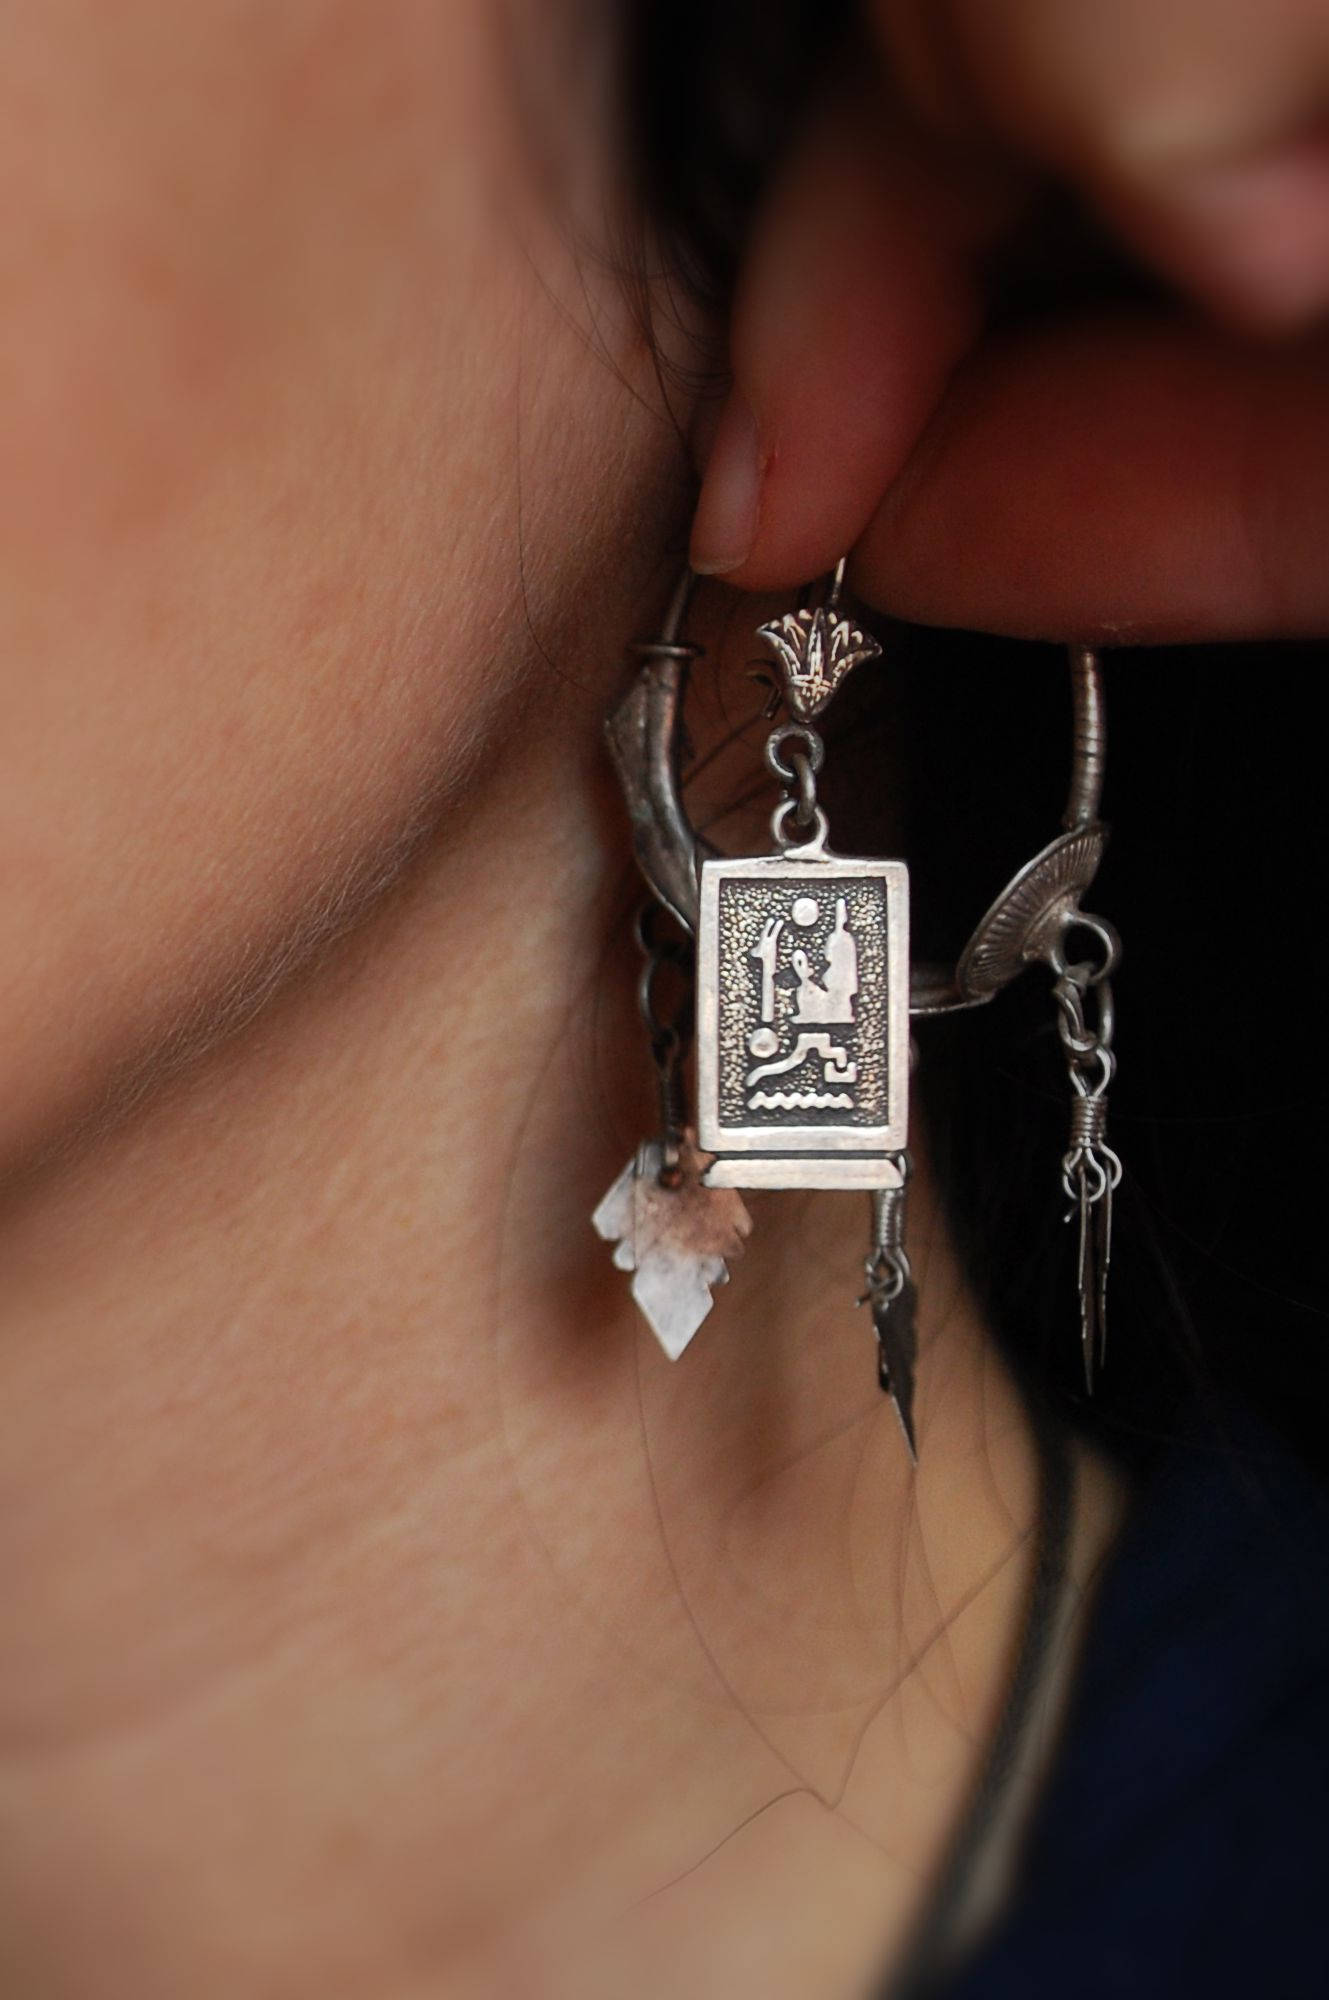 Egyptian Hieroglyph Earrings - Egyptian Cartouche Earrings - Egypt Silver Earrings - Egyptian Jewelry